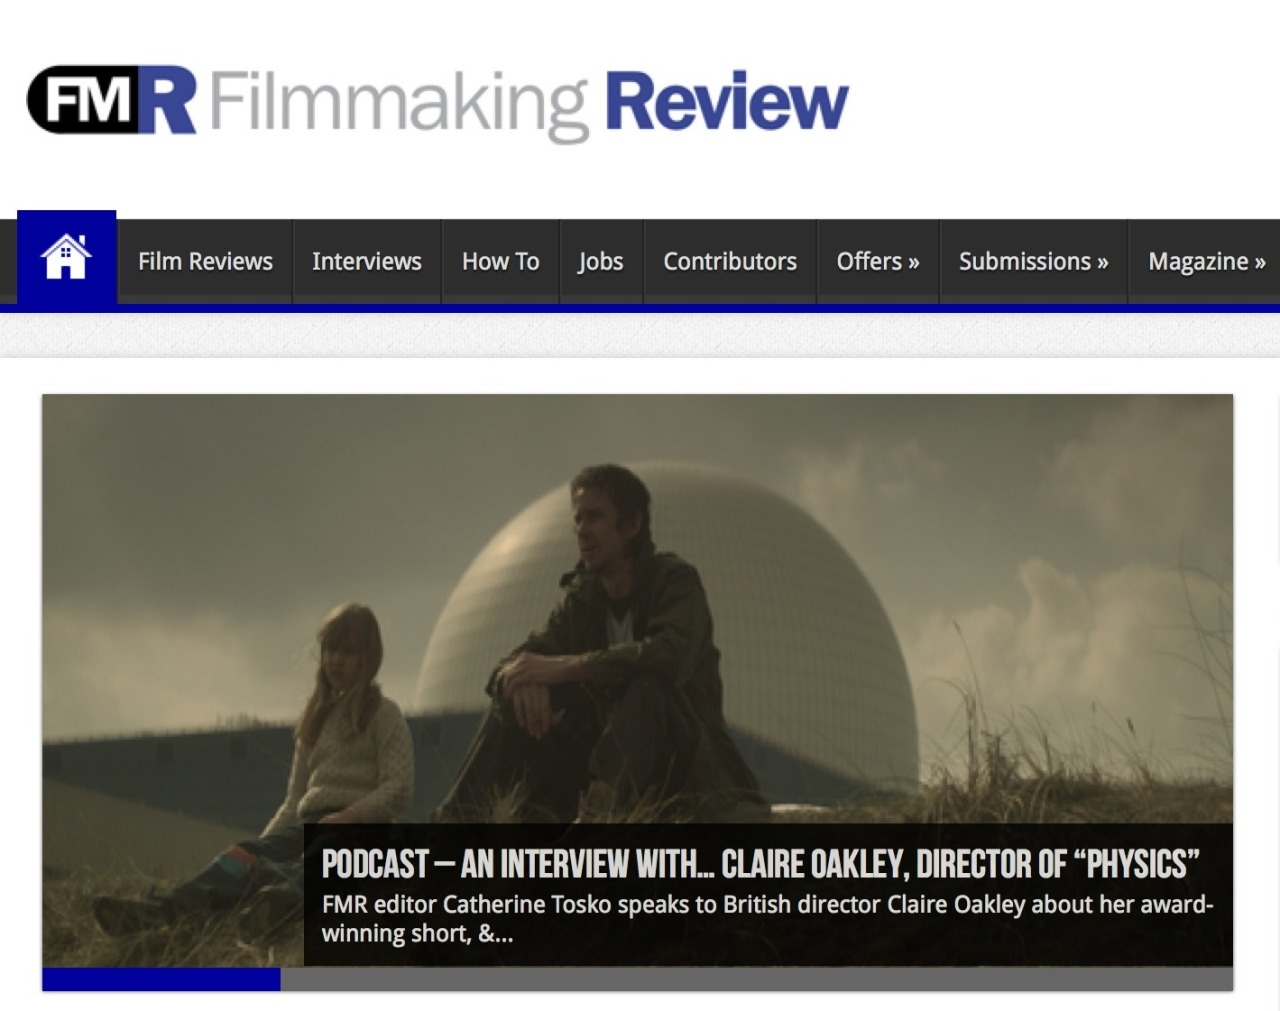 cnoakley:  A podcast with me in Filmmaking Review listen here